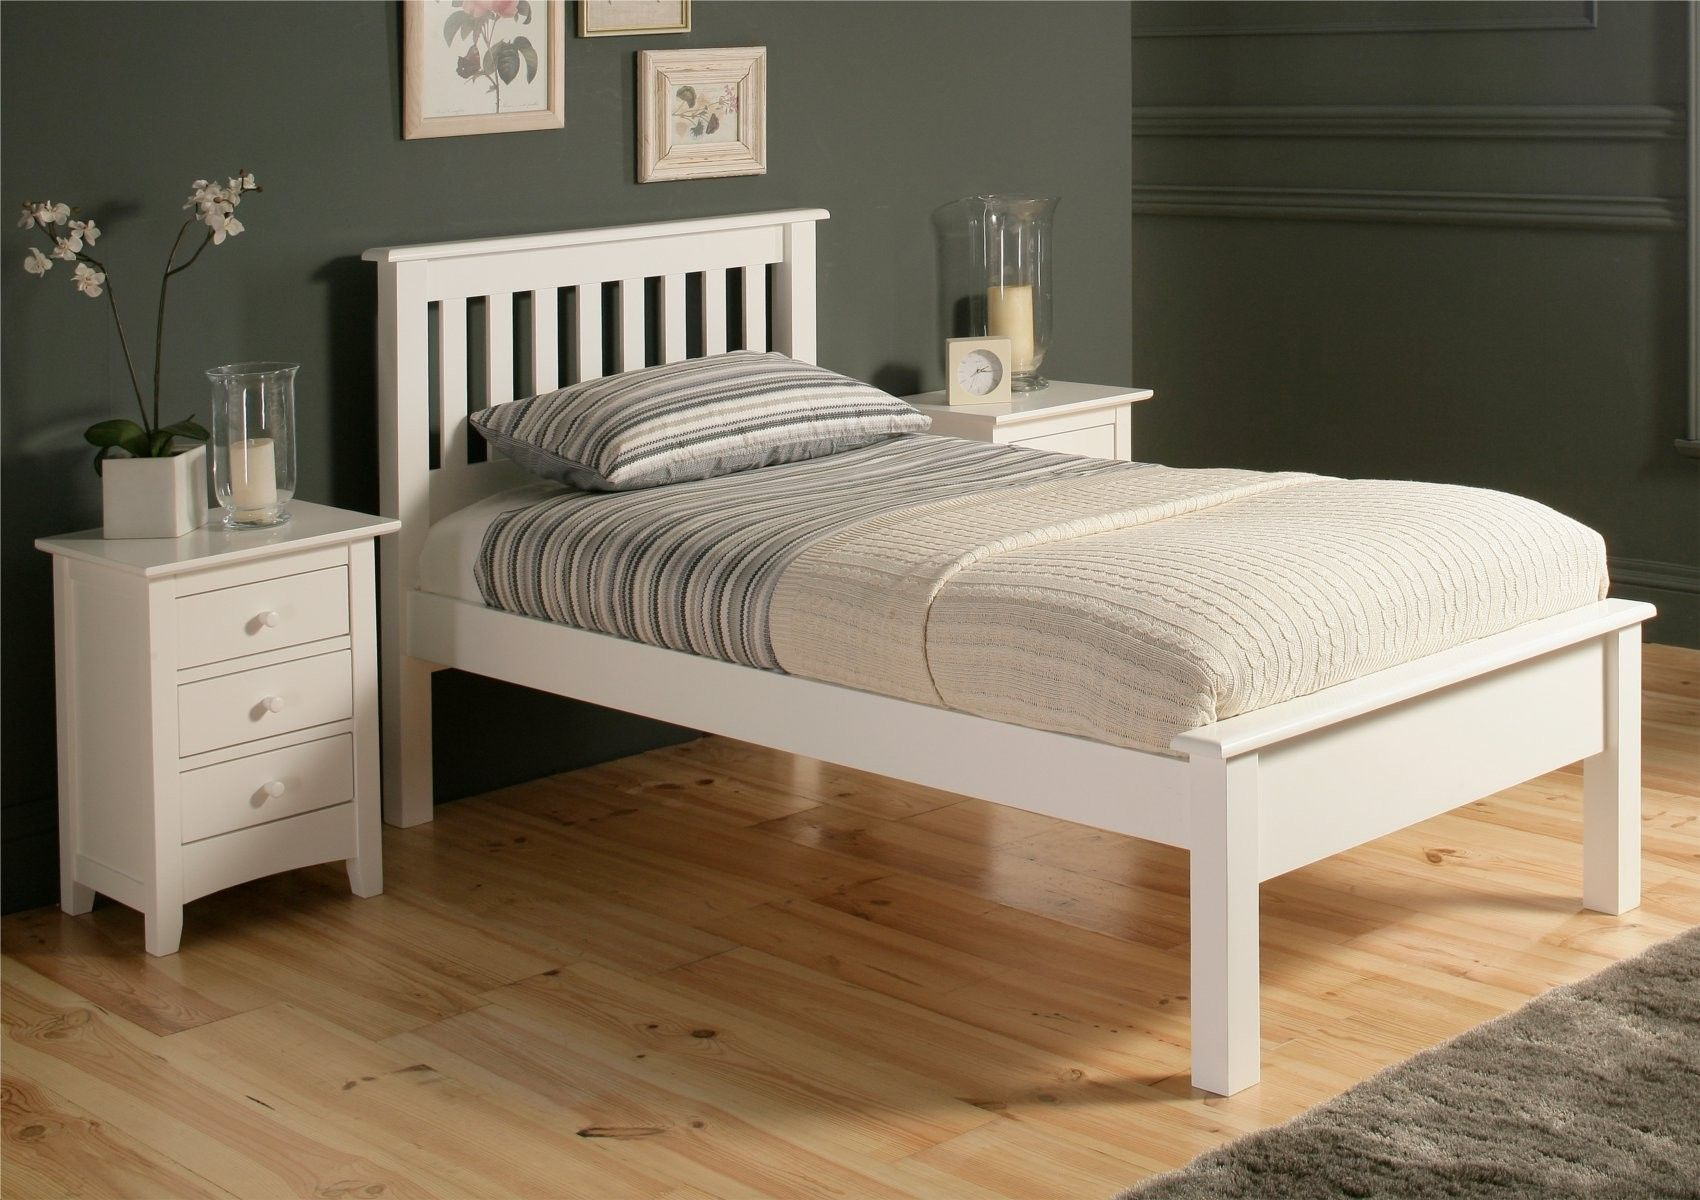 Simple Bedroom With Single Bed the low foot end design on this classic shaker style bed make this